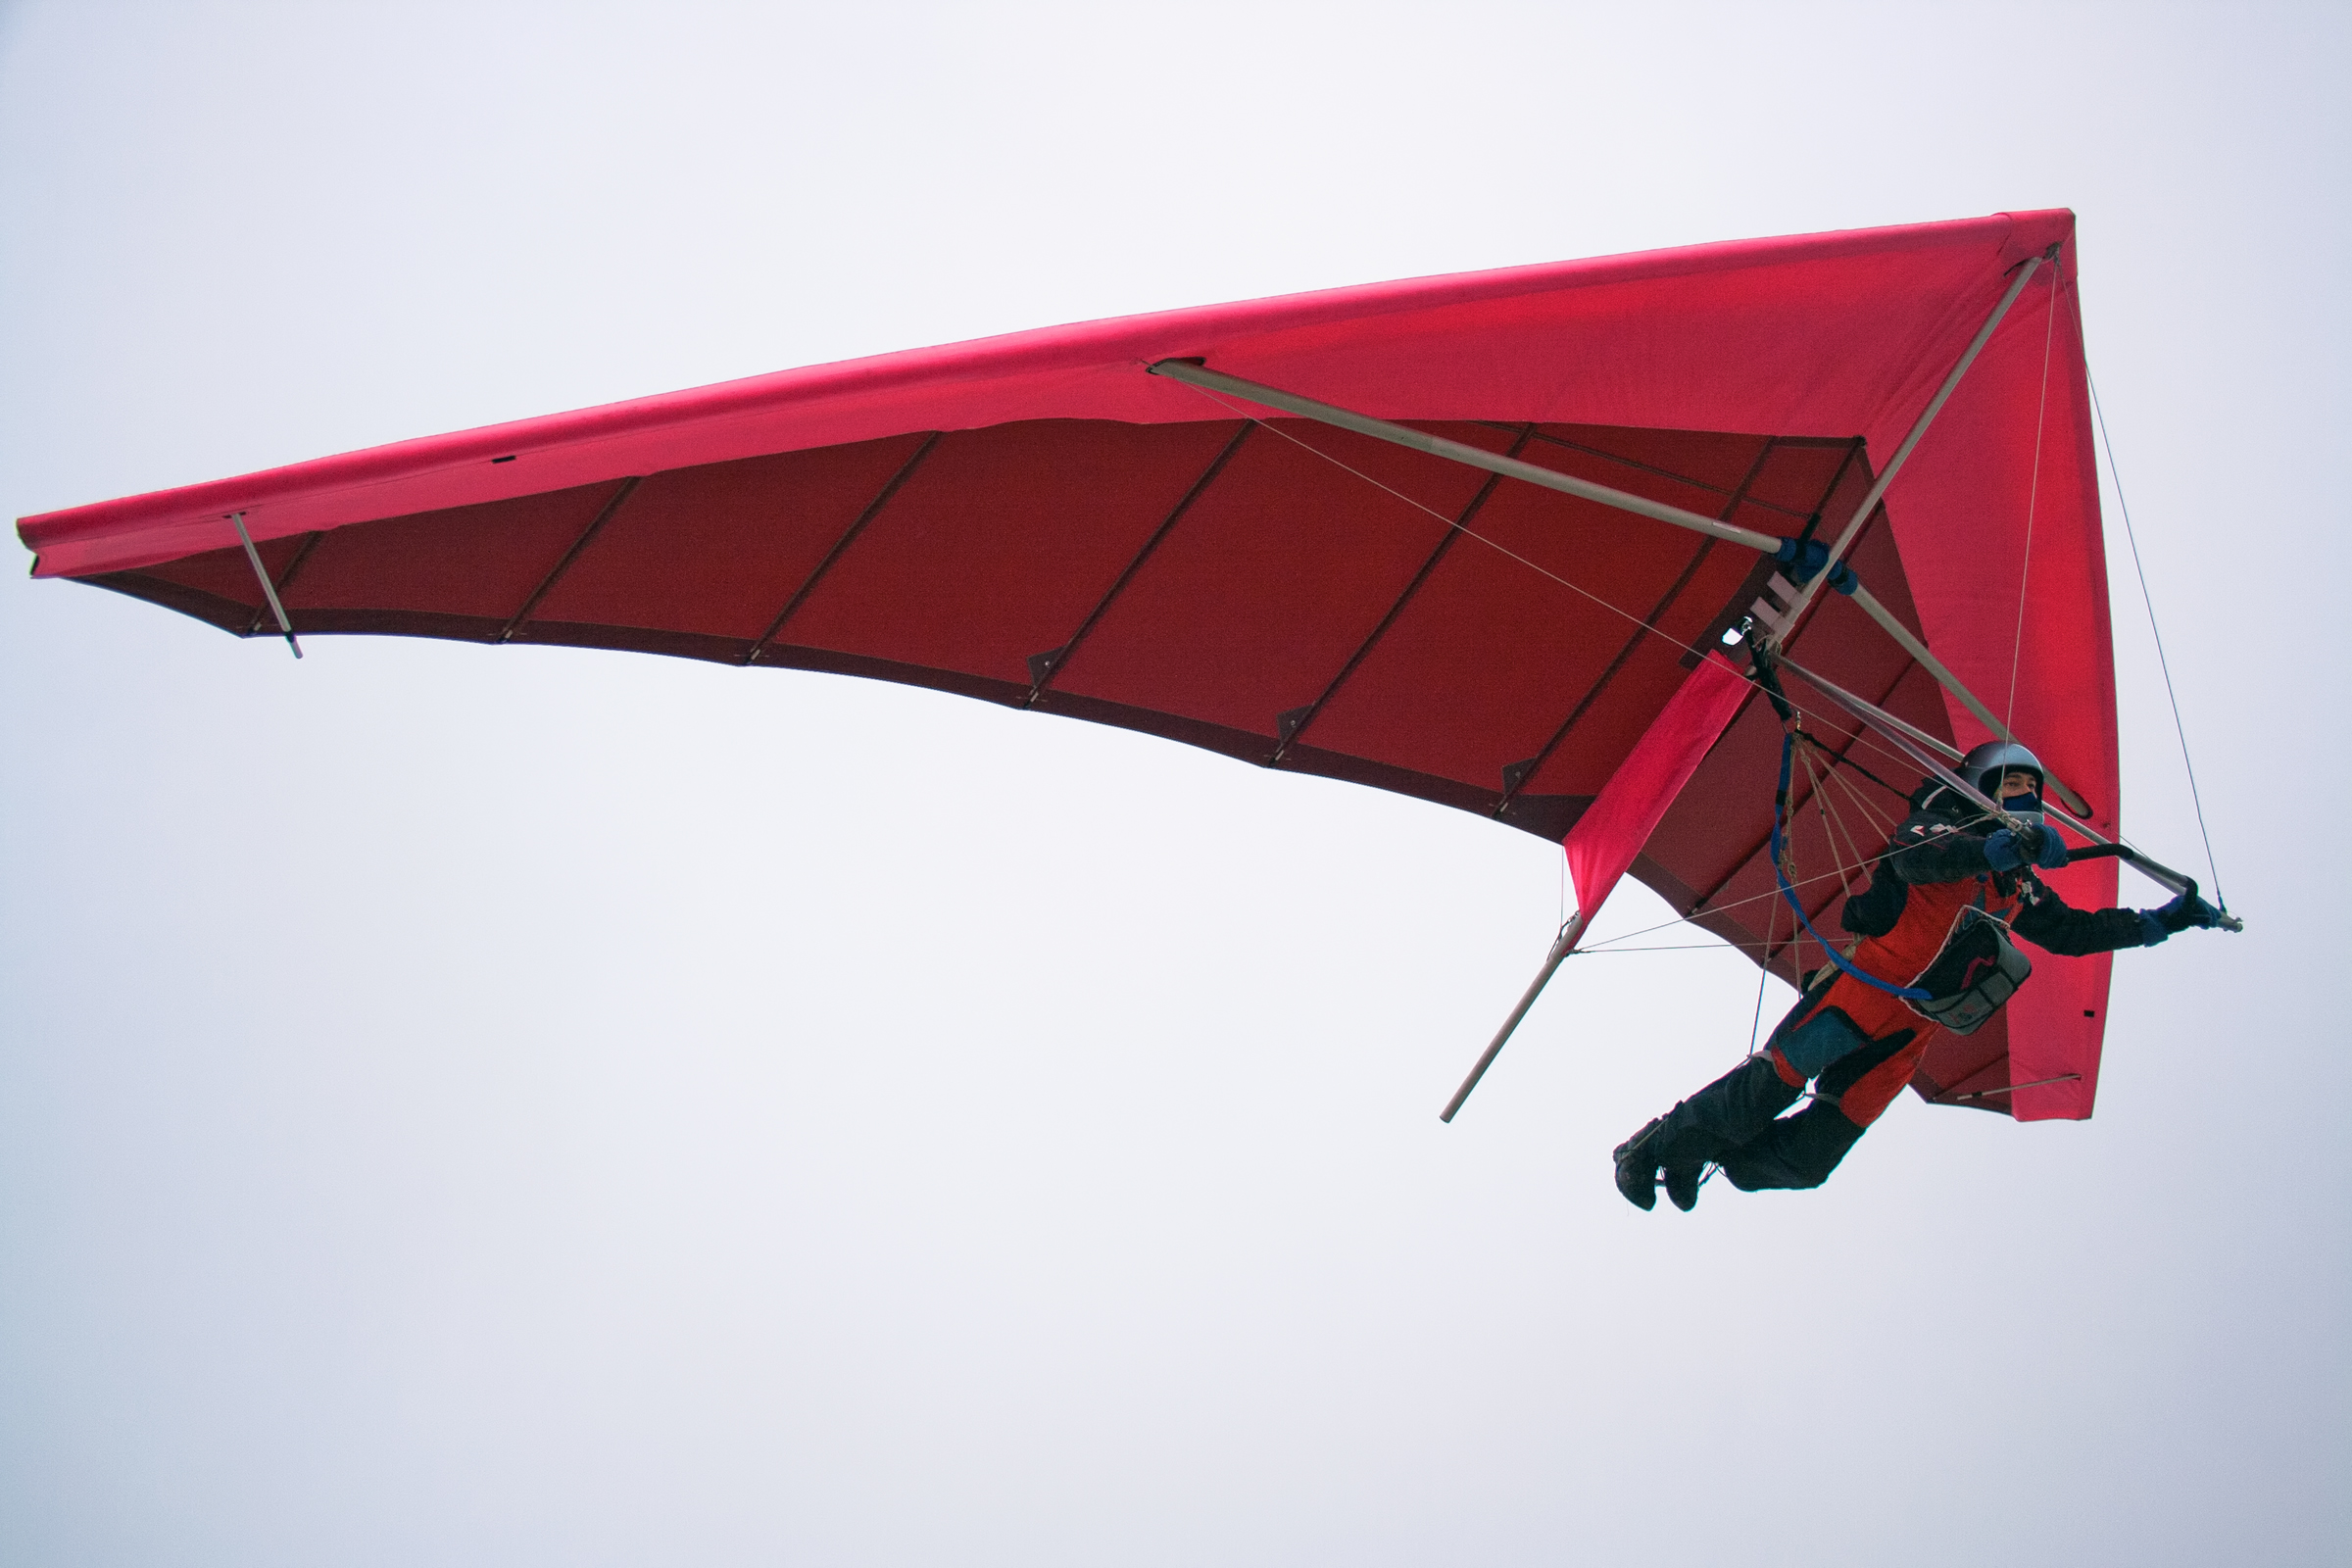 Hang Gliding in Washington